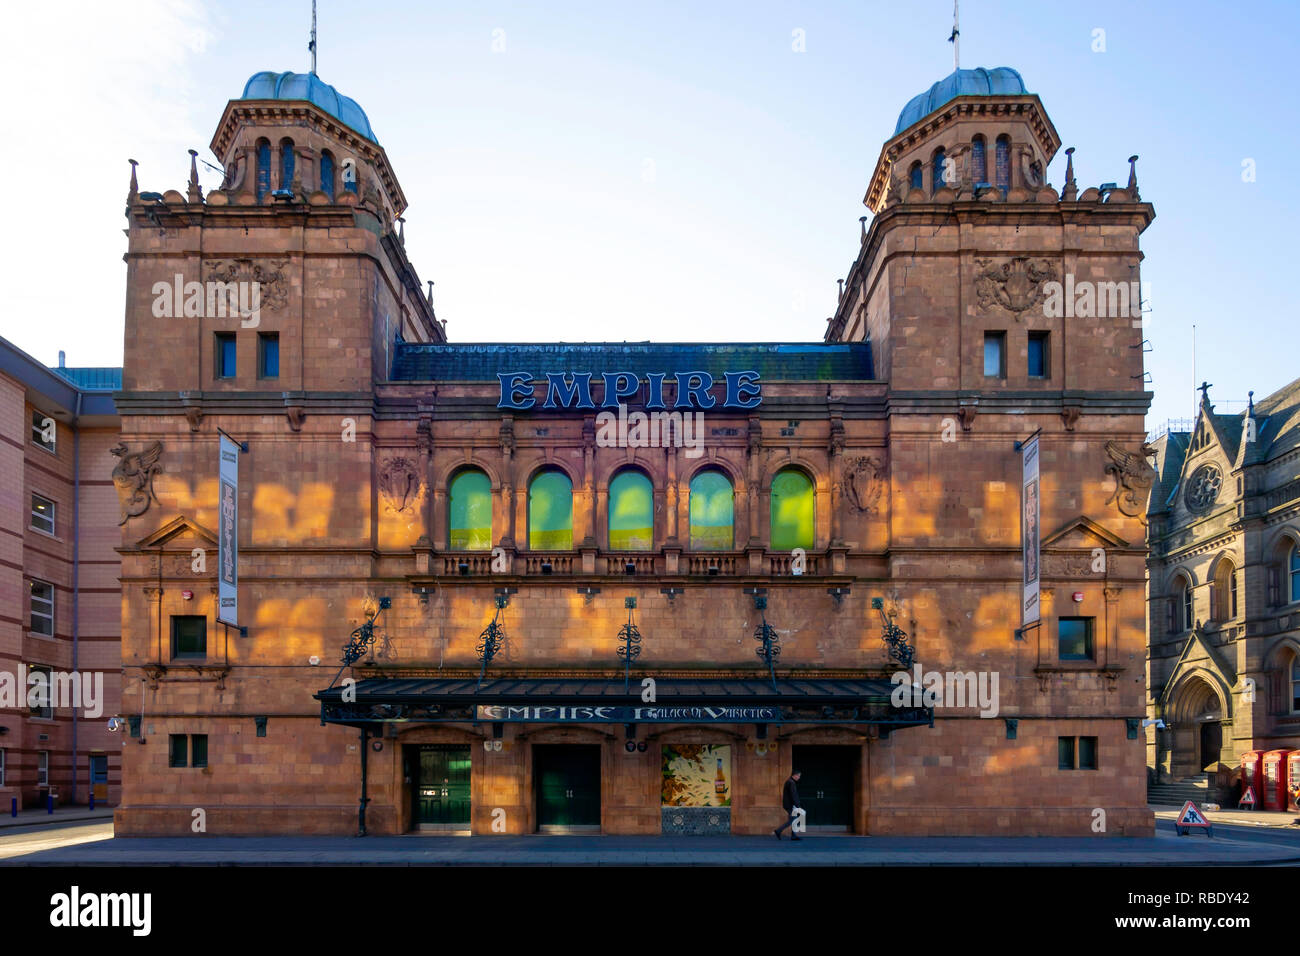 EmpirePalace of Varieties in Middlesbrough built in 1897 as a music hall designed by Ernest Runtz, is still in regular use for stage performances - Stock Image